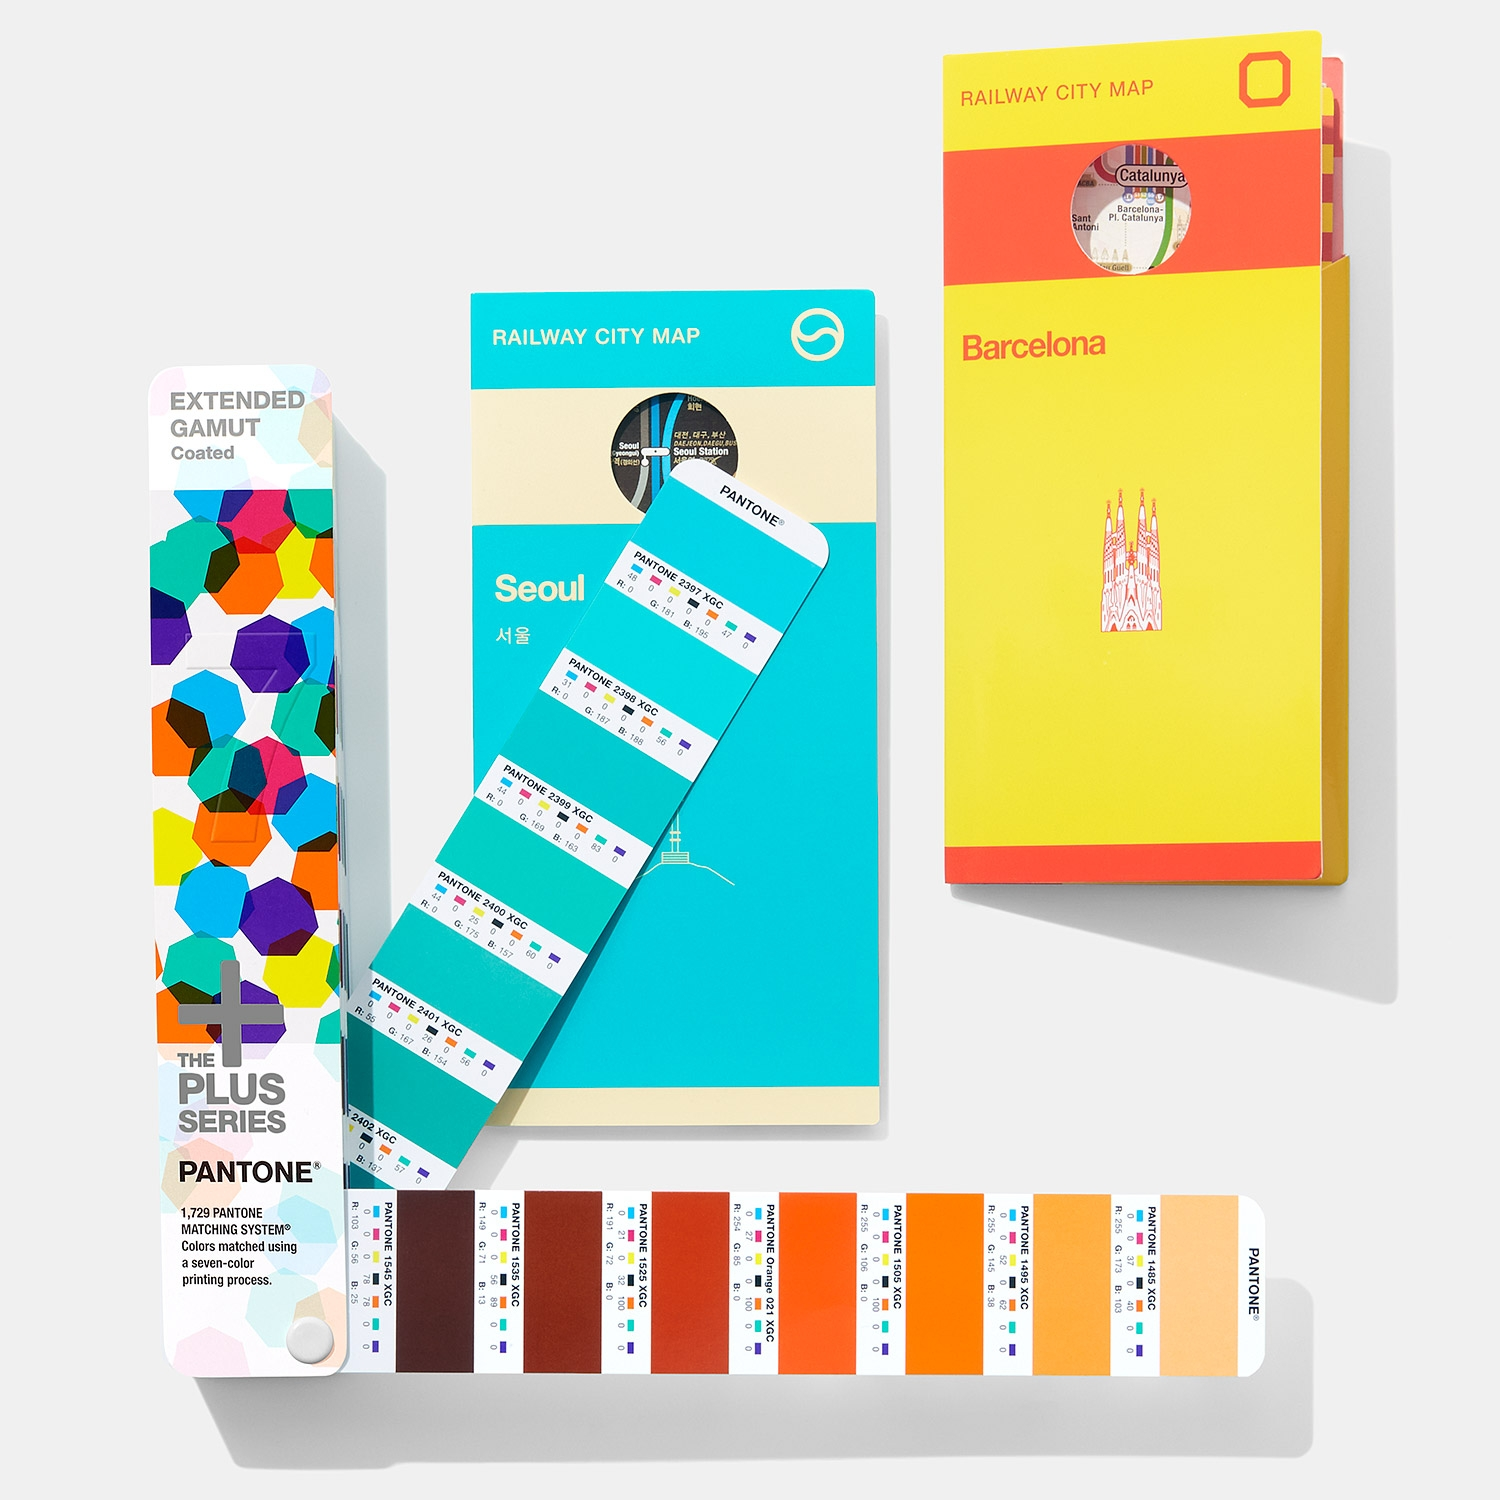 Pantone Solid-to-Seven Set Extended Gamut - View 1